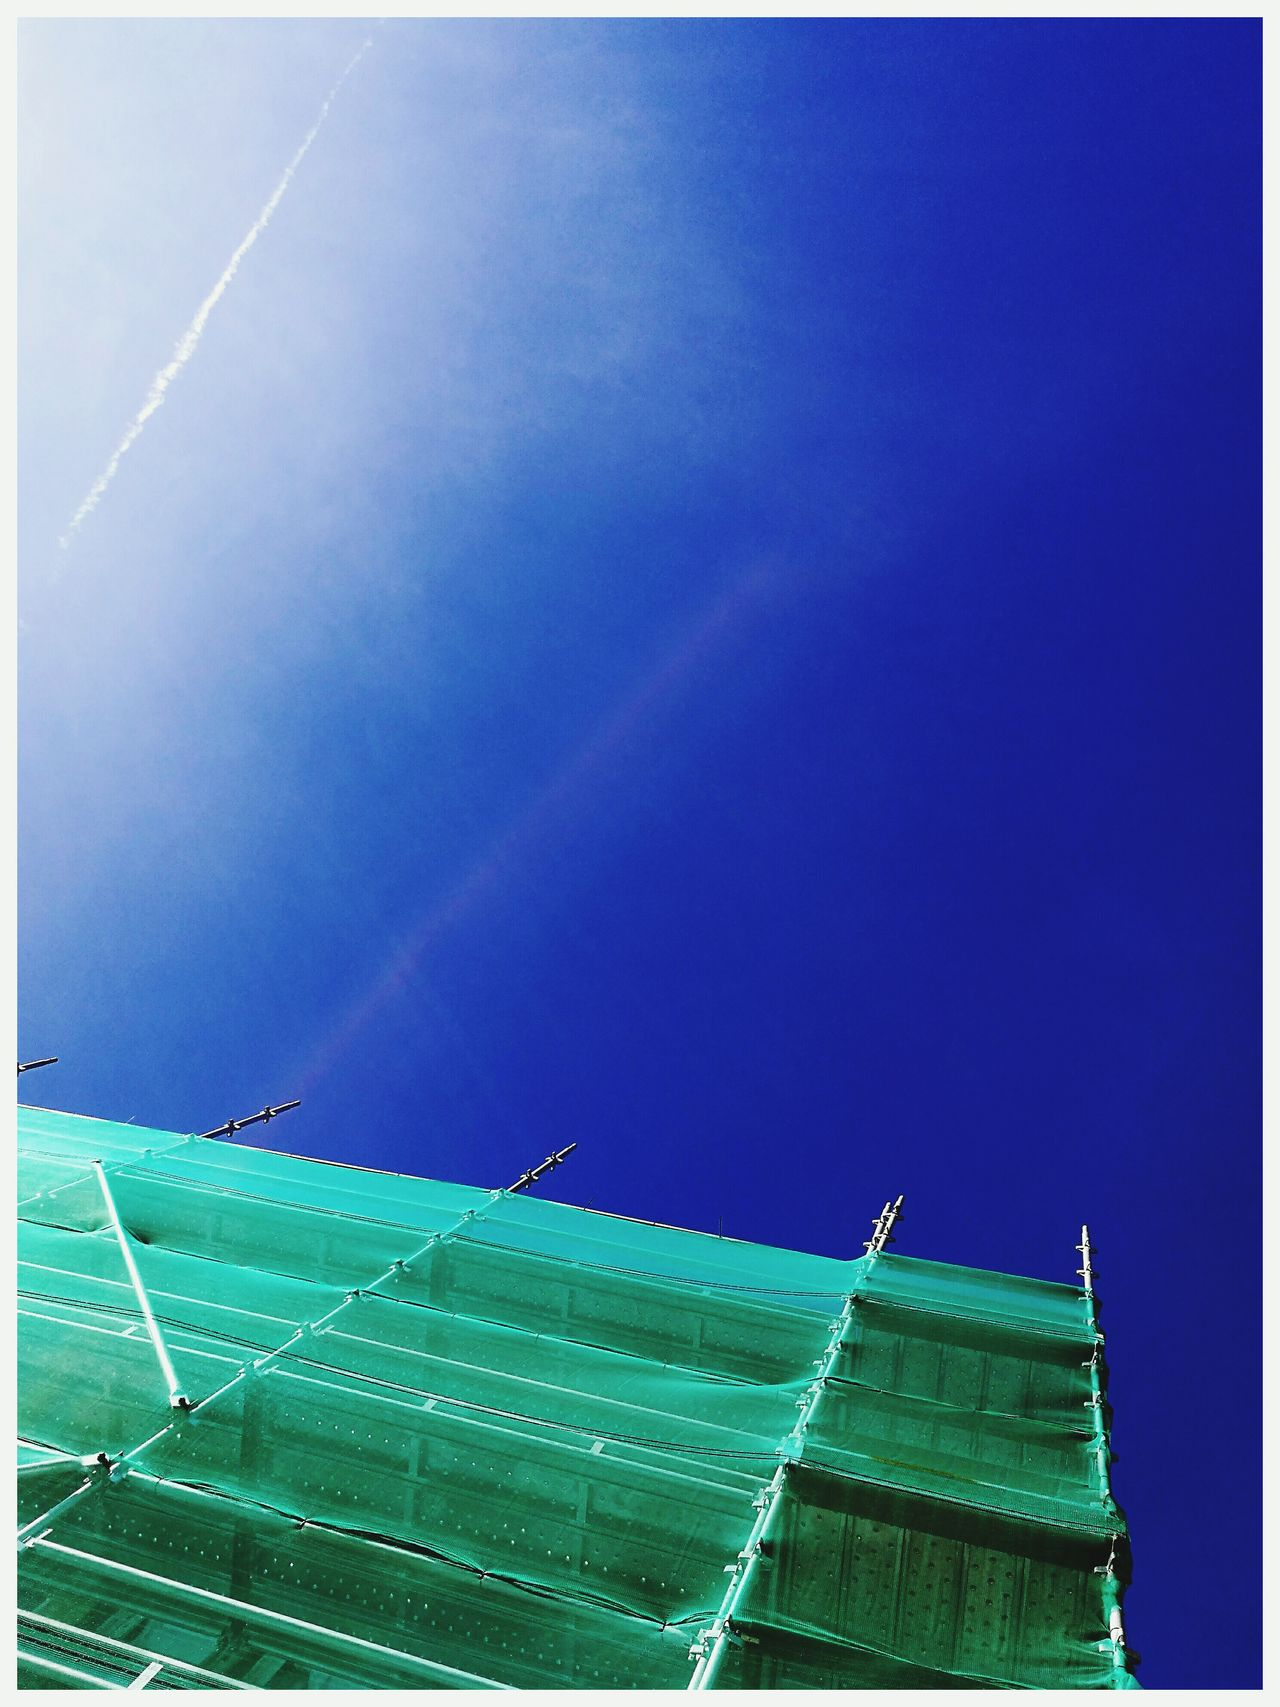 Scaffolding Netting Green plank of wood Metal building restoration blue sky Straight Lines Textured  Building Exterior Built Structure Architecture Outdoors Light Cloud